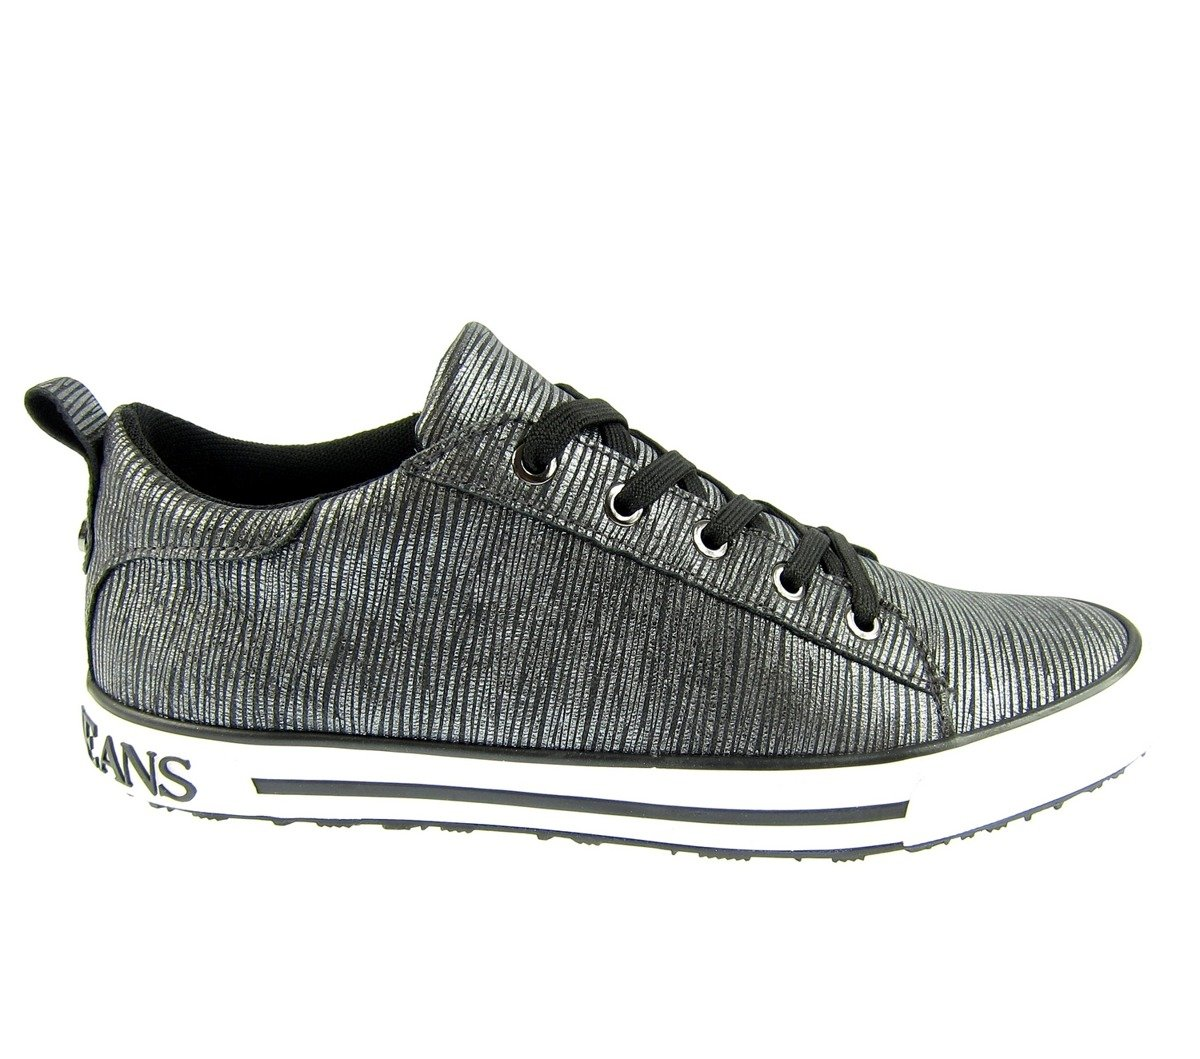 ARMANI JEANS 6AHOC Damen Women Sneaker Schuhe Shoes Anthrazit Click to zoom  ... b1a3524021